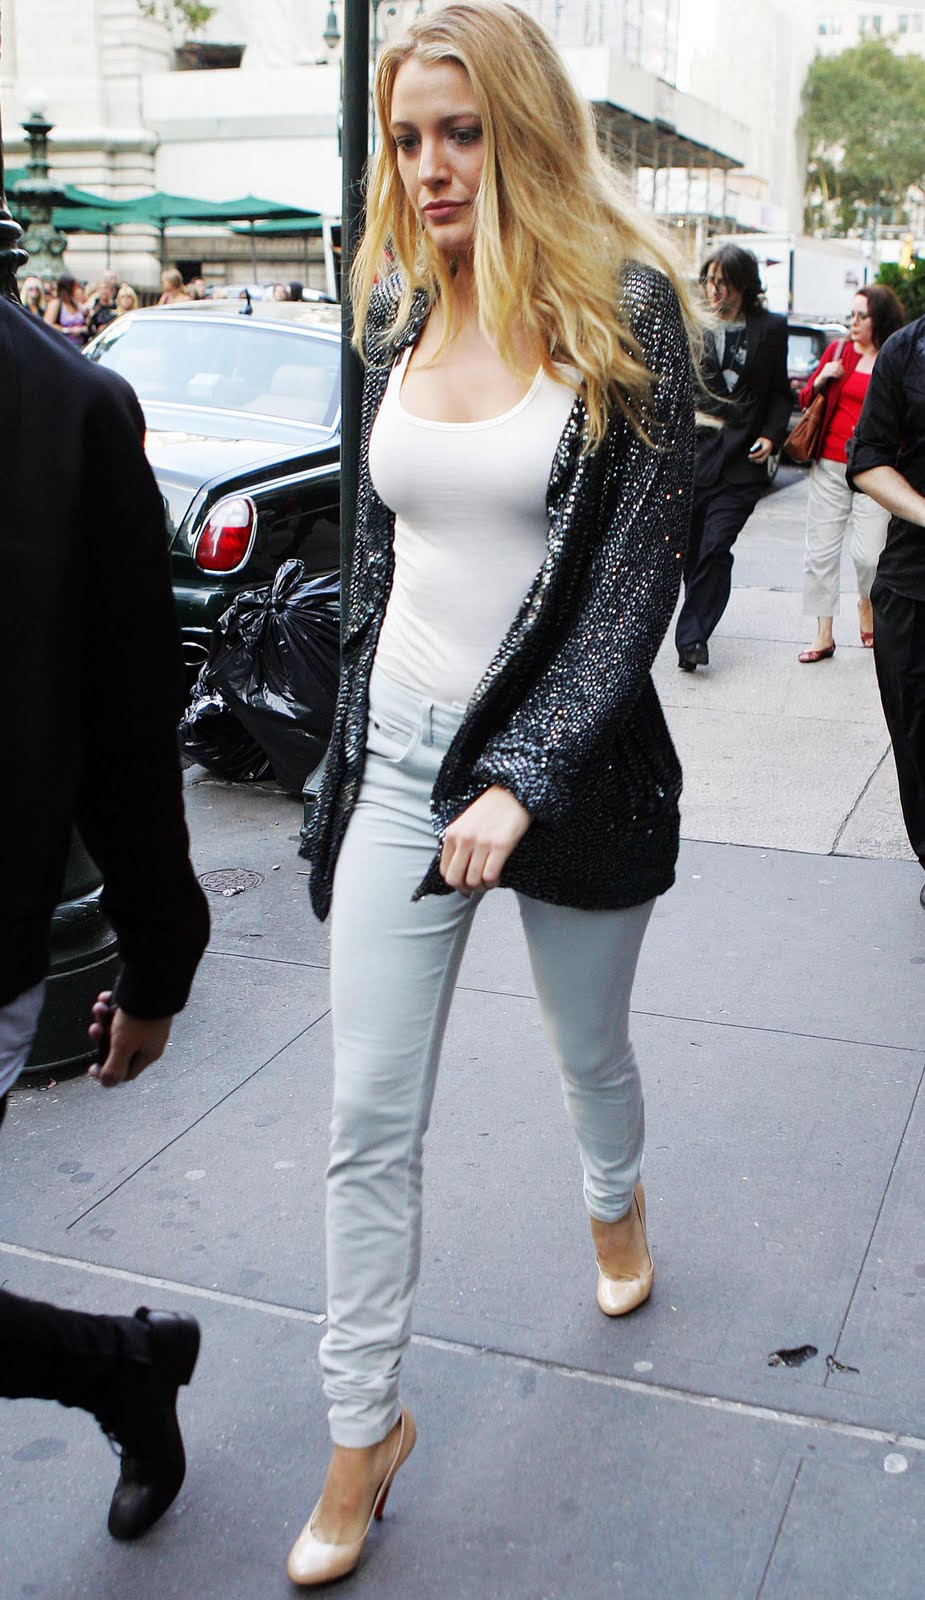 05973 celebrity paradise com the elder blake lively 2009 09 13   steps out in nyc 122 245lo Blake Lively